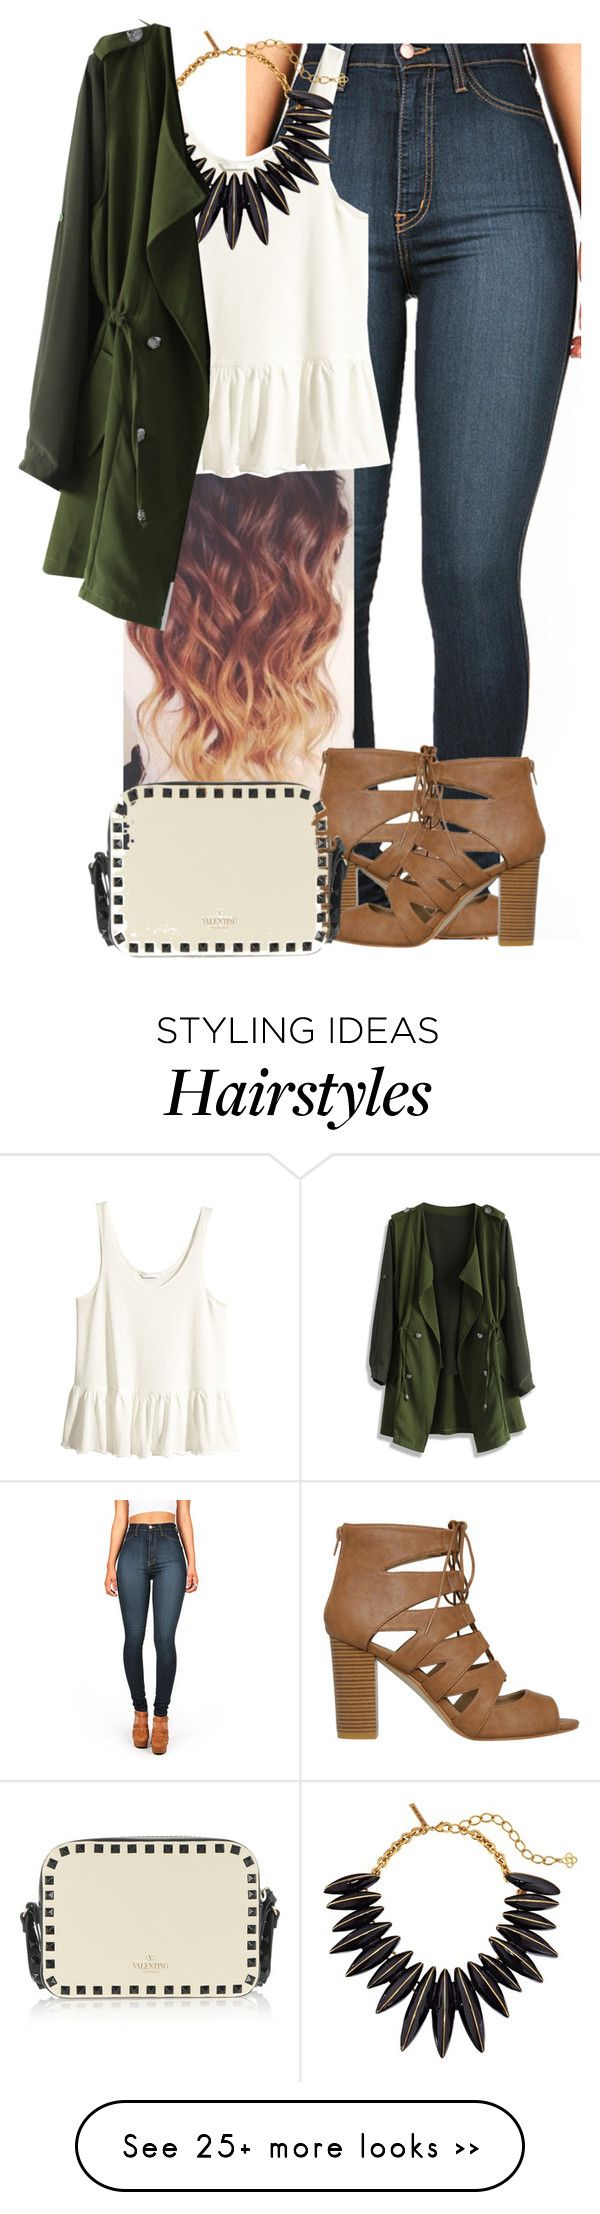 """""""XOXO"""" by nimrah-b on Polyvore featuring H&M, Oscar de la Renta and Chicwish"""